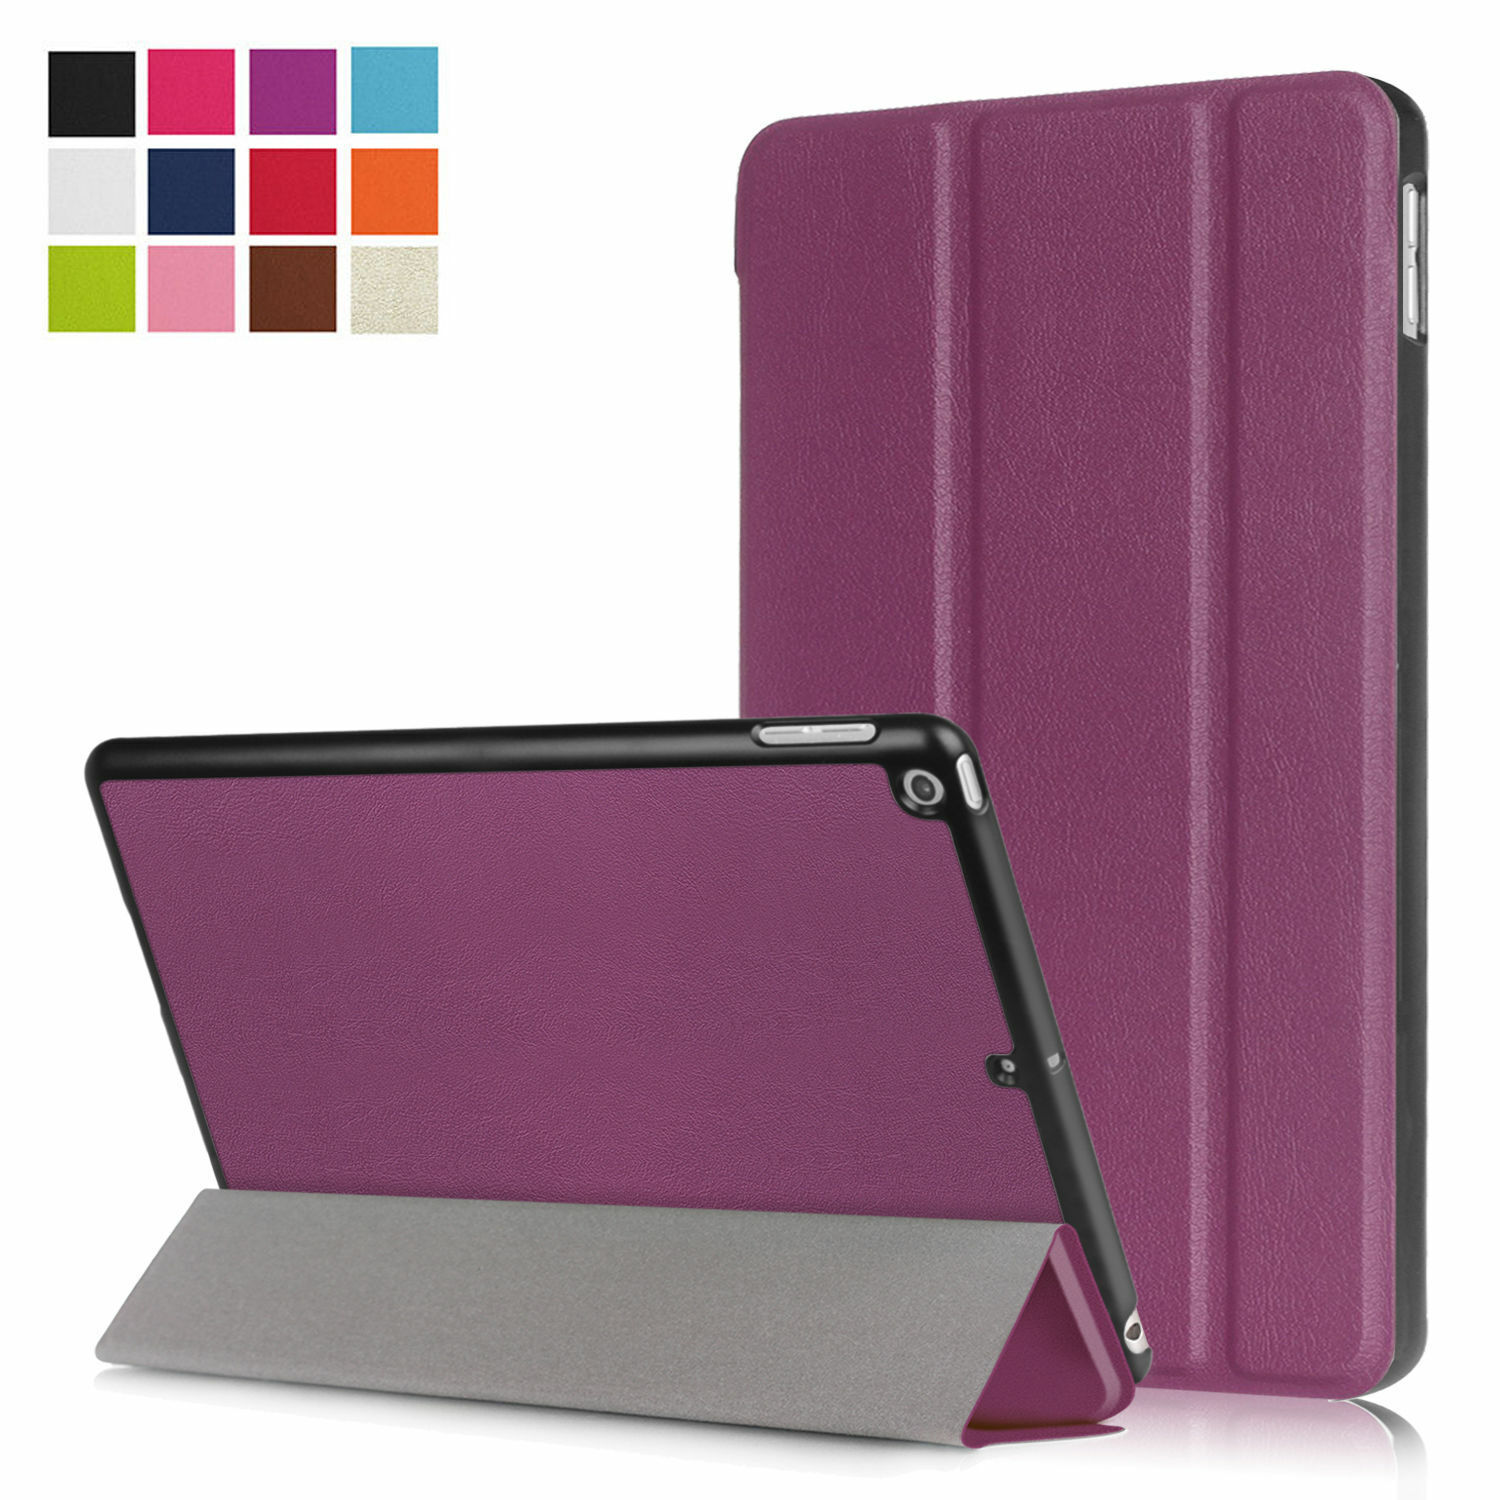 Case for Apple IPAD Air 2 9,7 Inch Pouch Case Smart Cover Fl